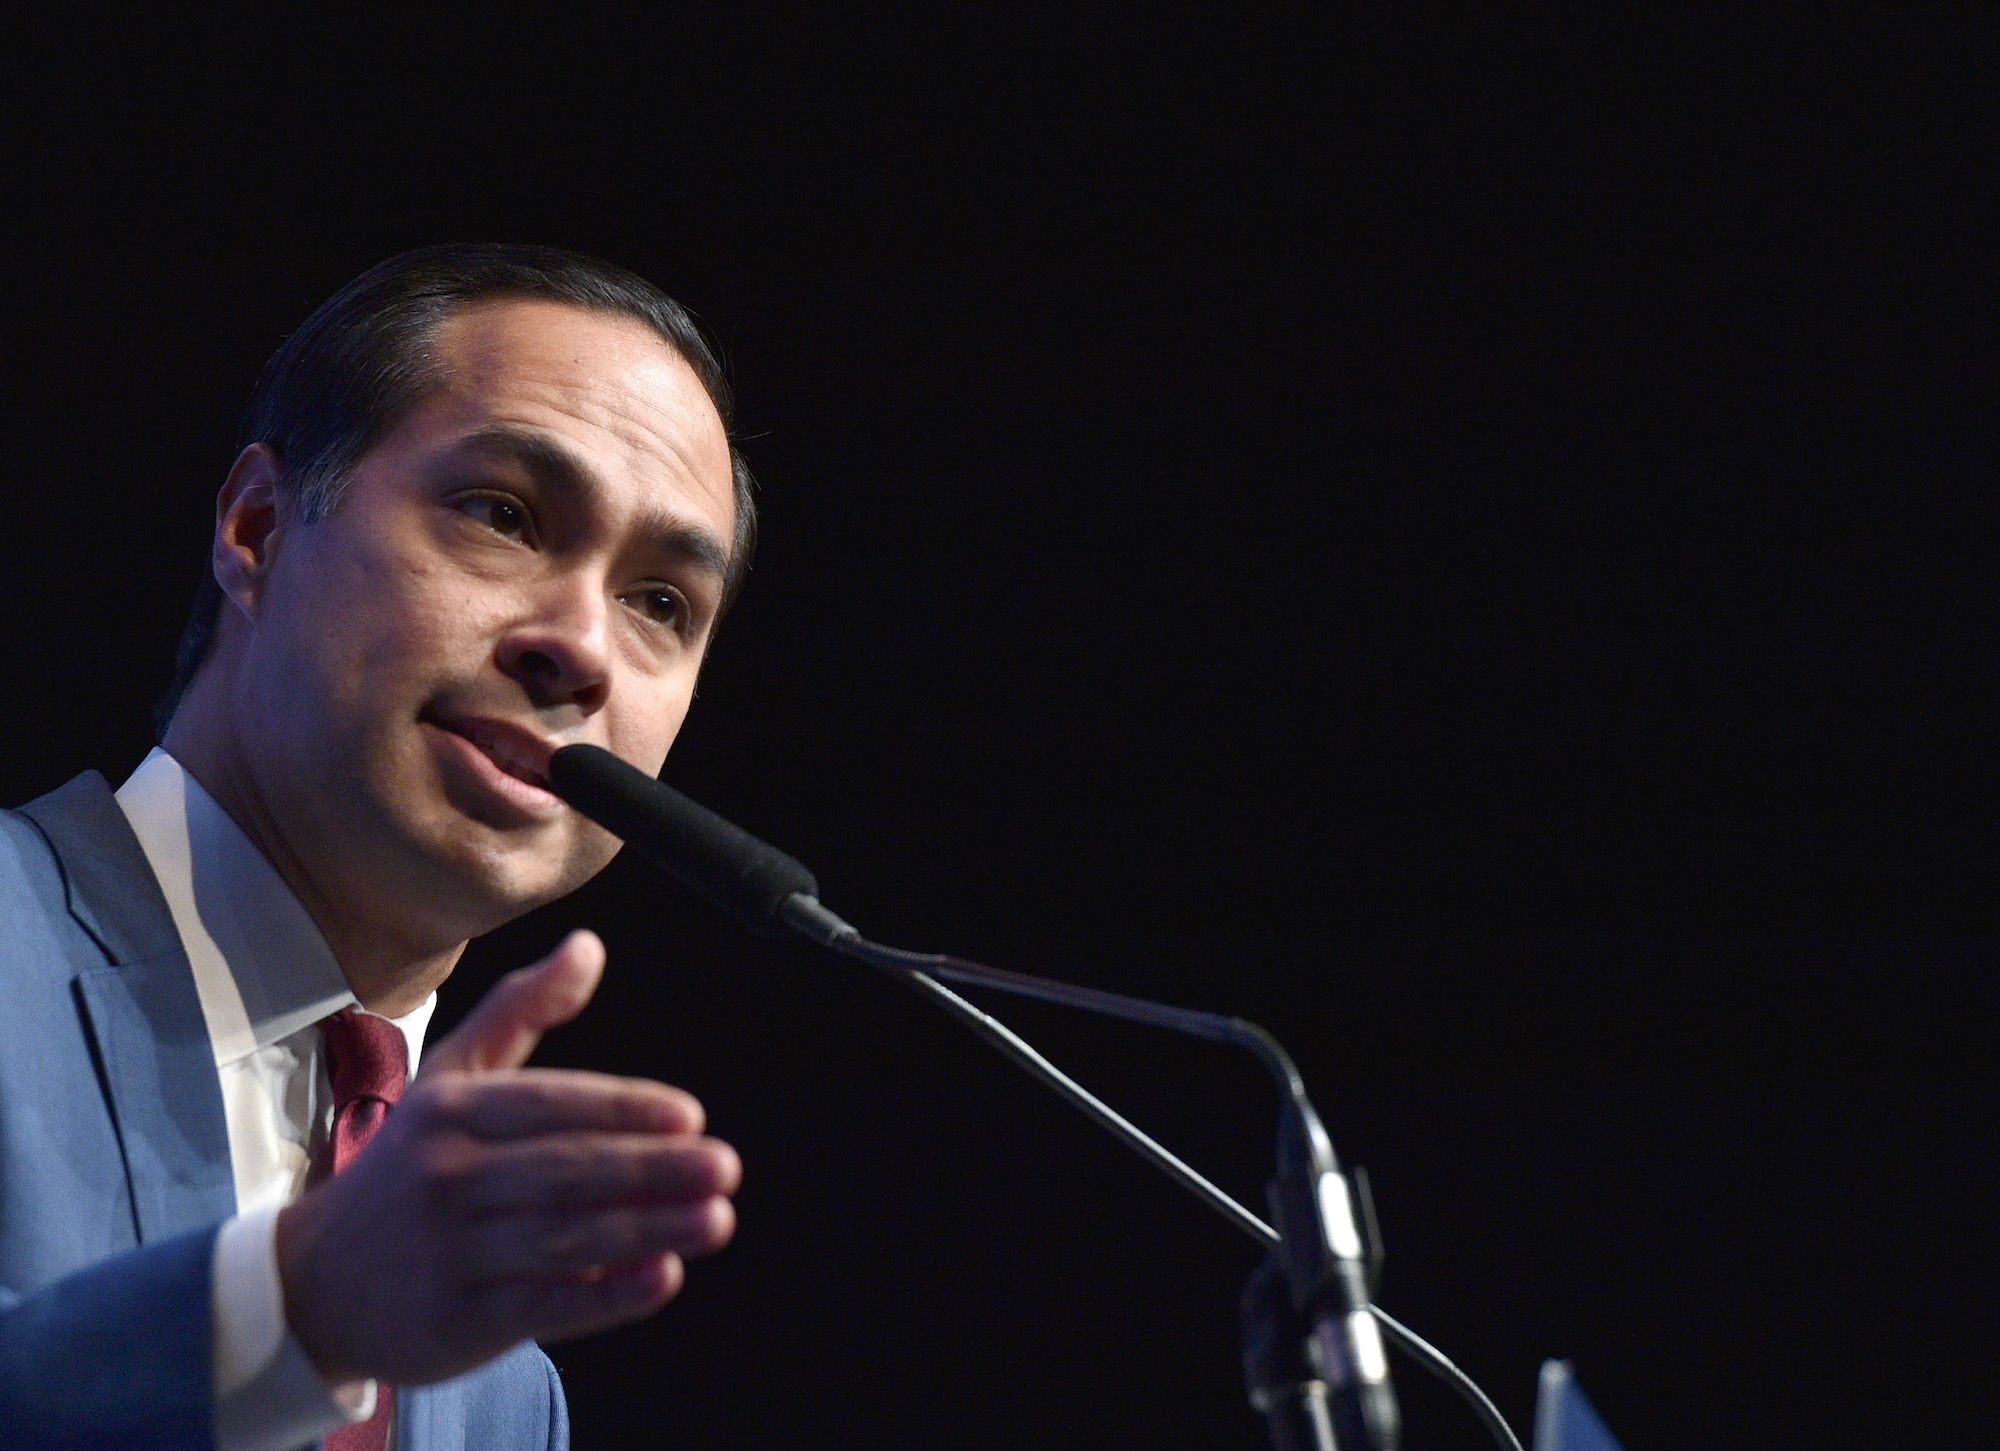 Julian Castro Has Brought Issues to the Campaign No One Else Has, But He Won't Be on Stage Tonight